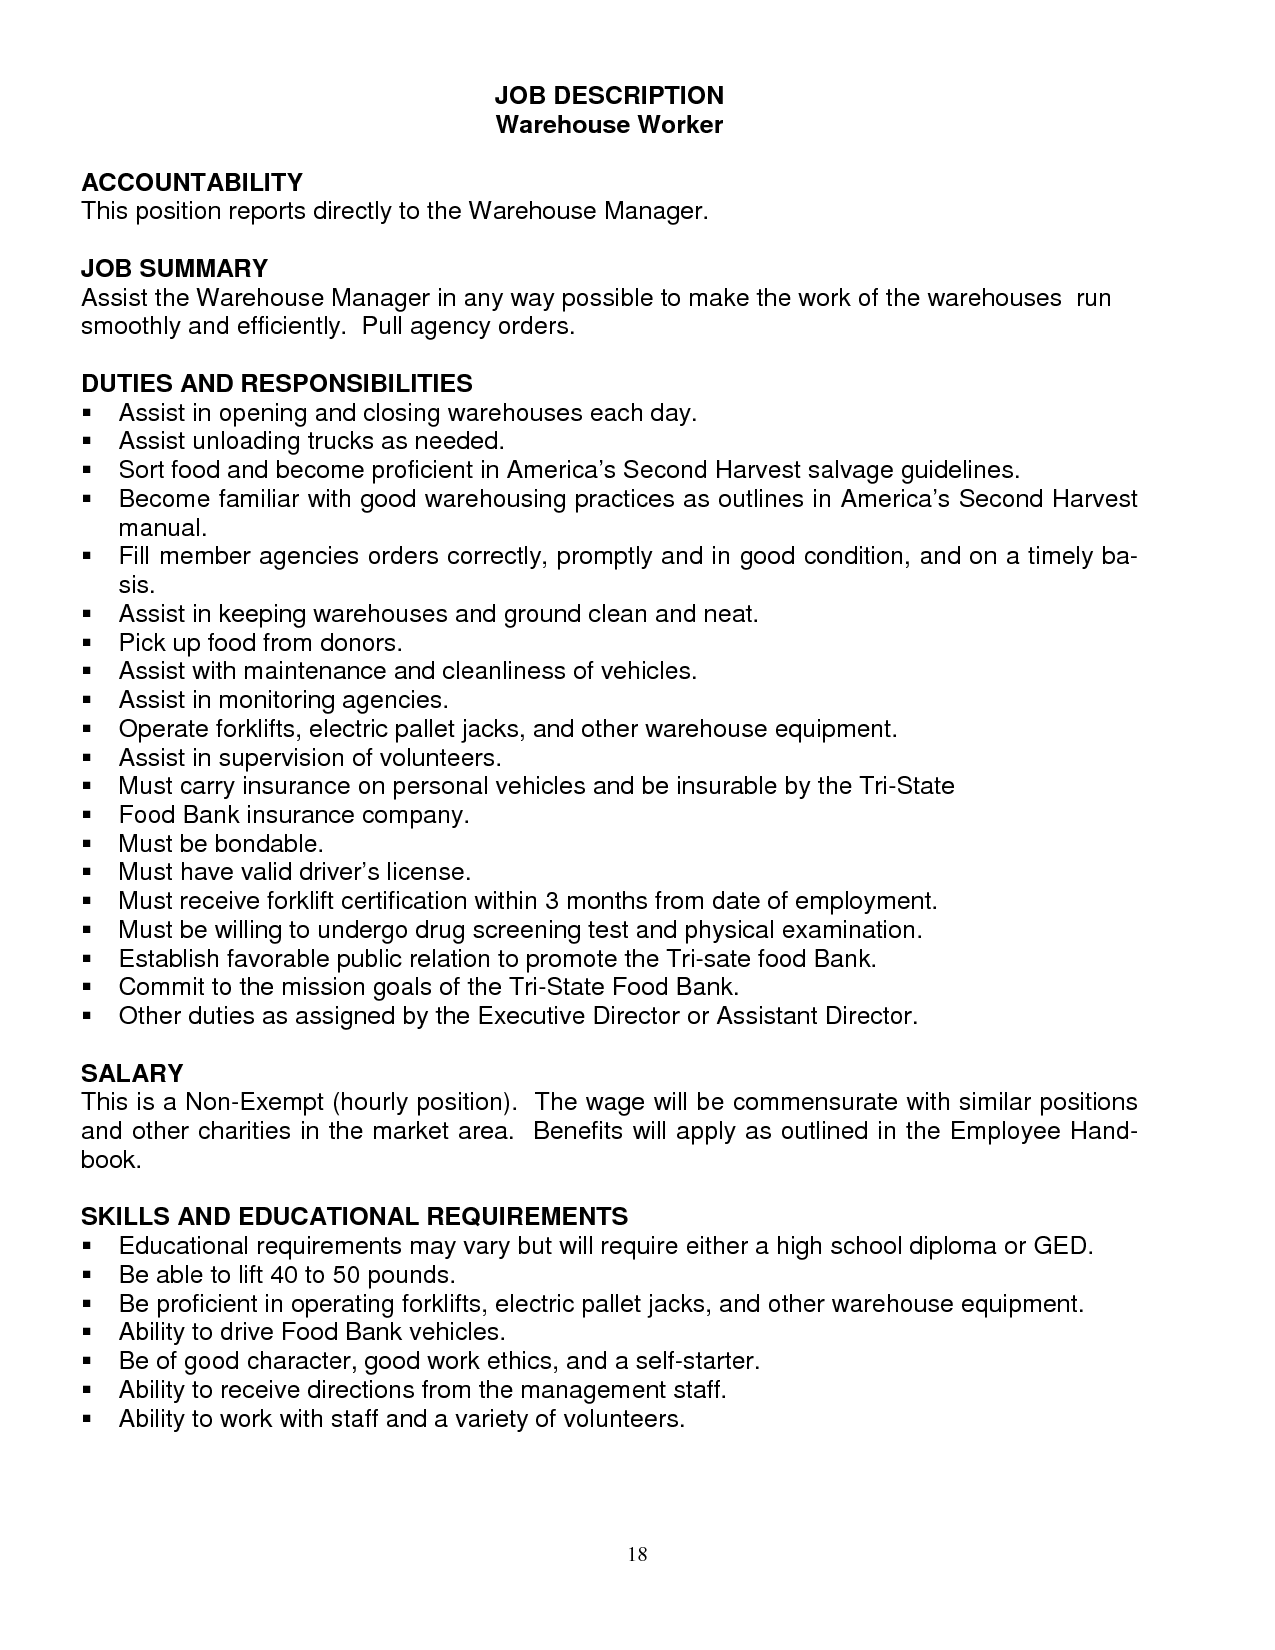 operations geologist job resume warehouse worker job description